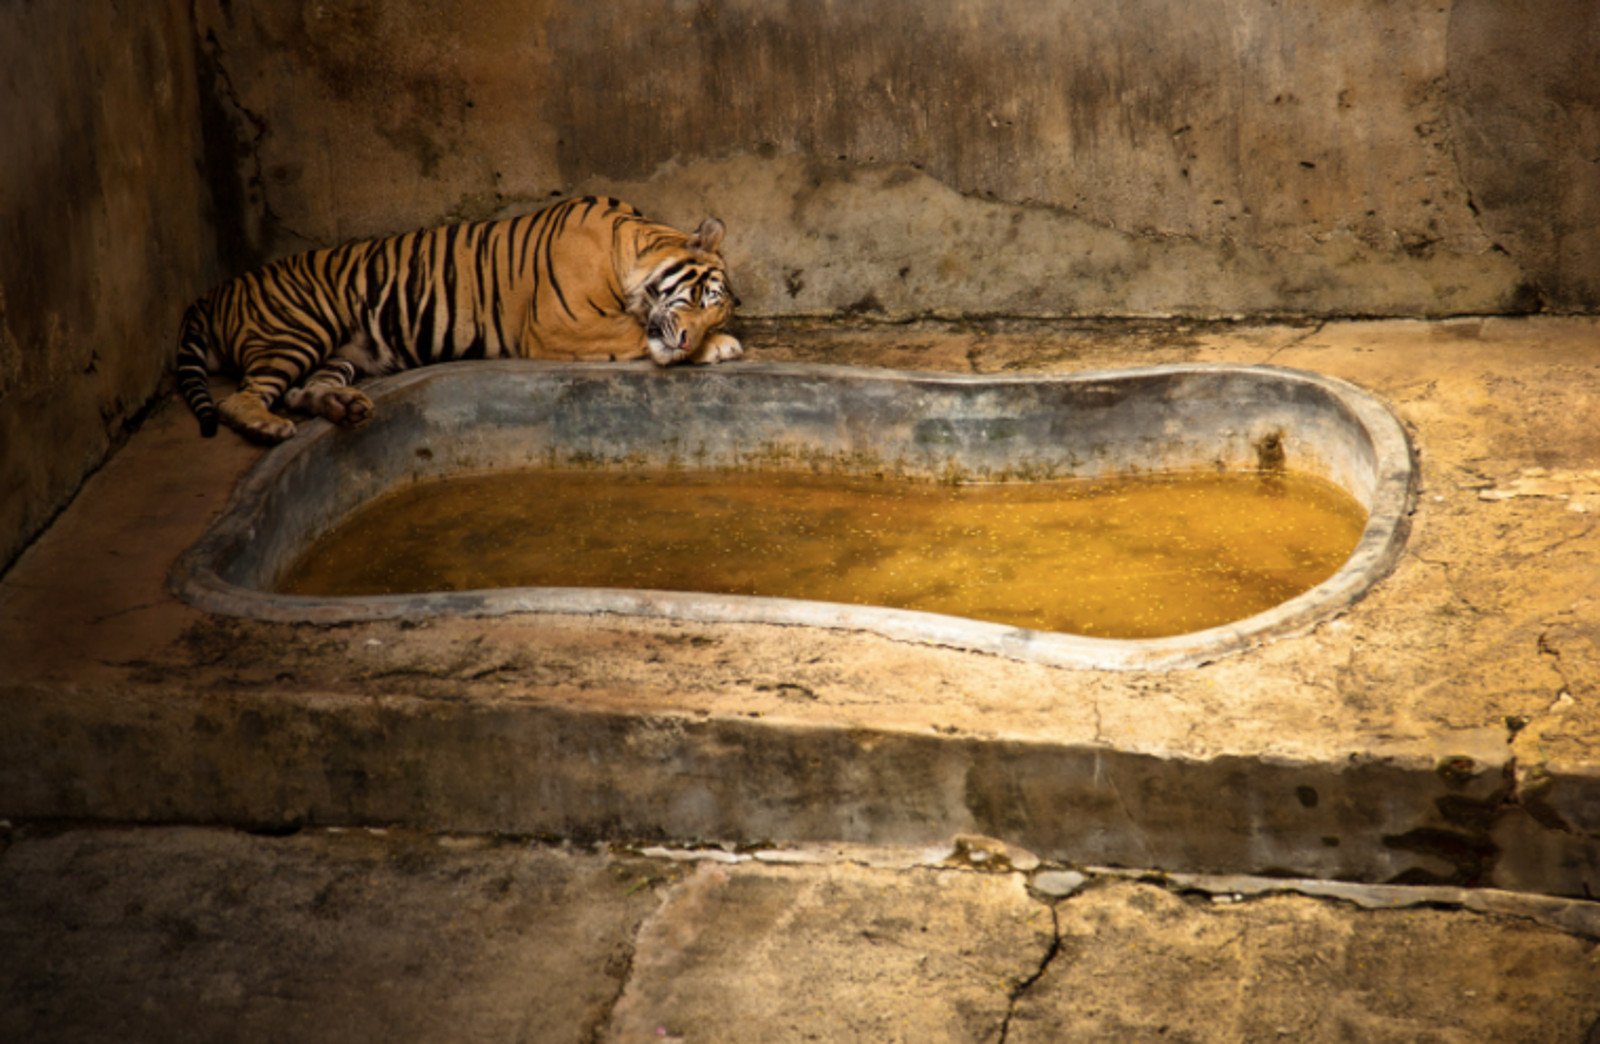 Why Our Views About Zoos Desperately Need to Evolve